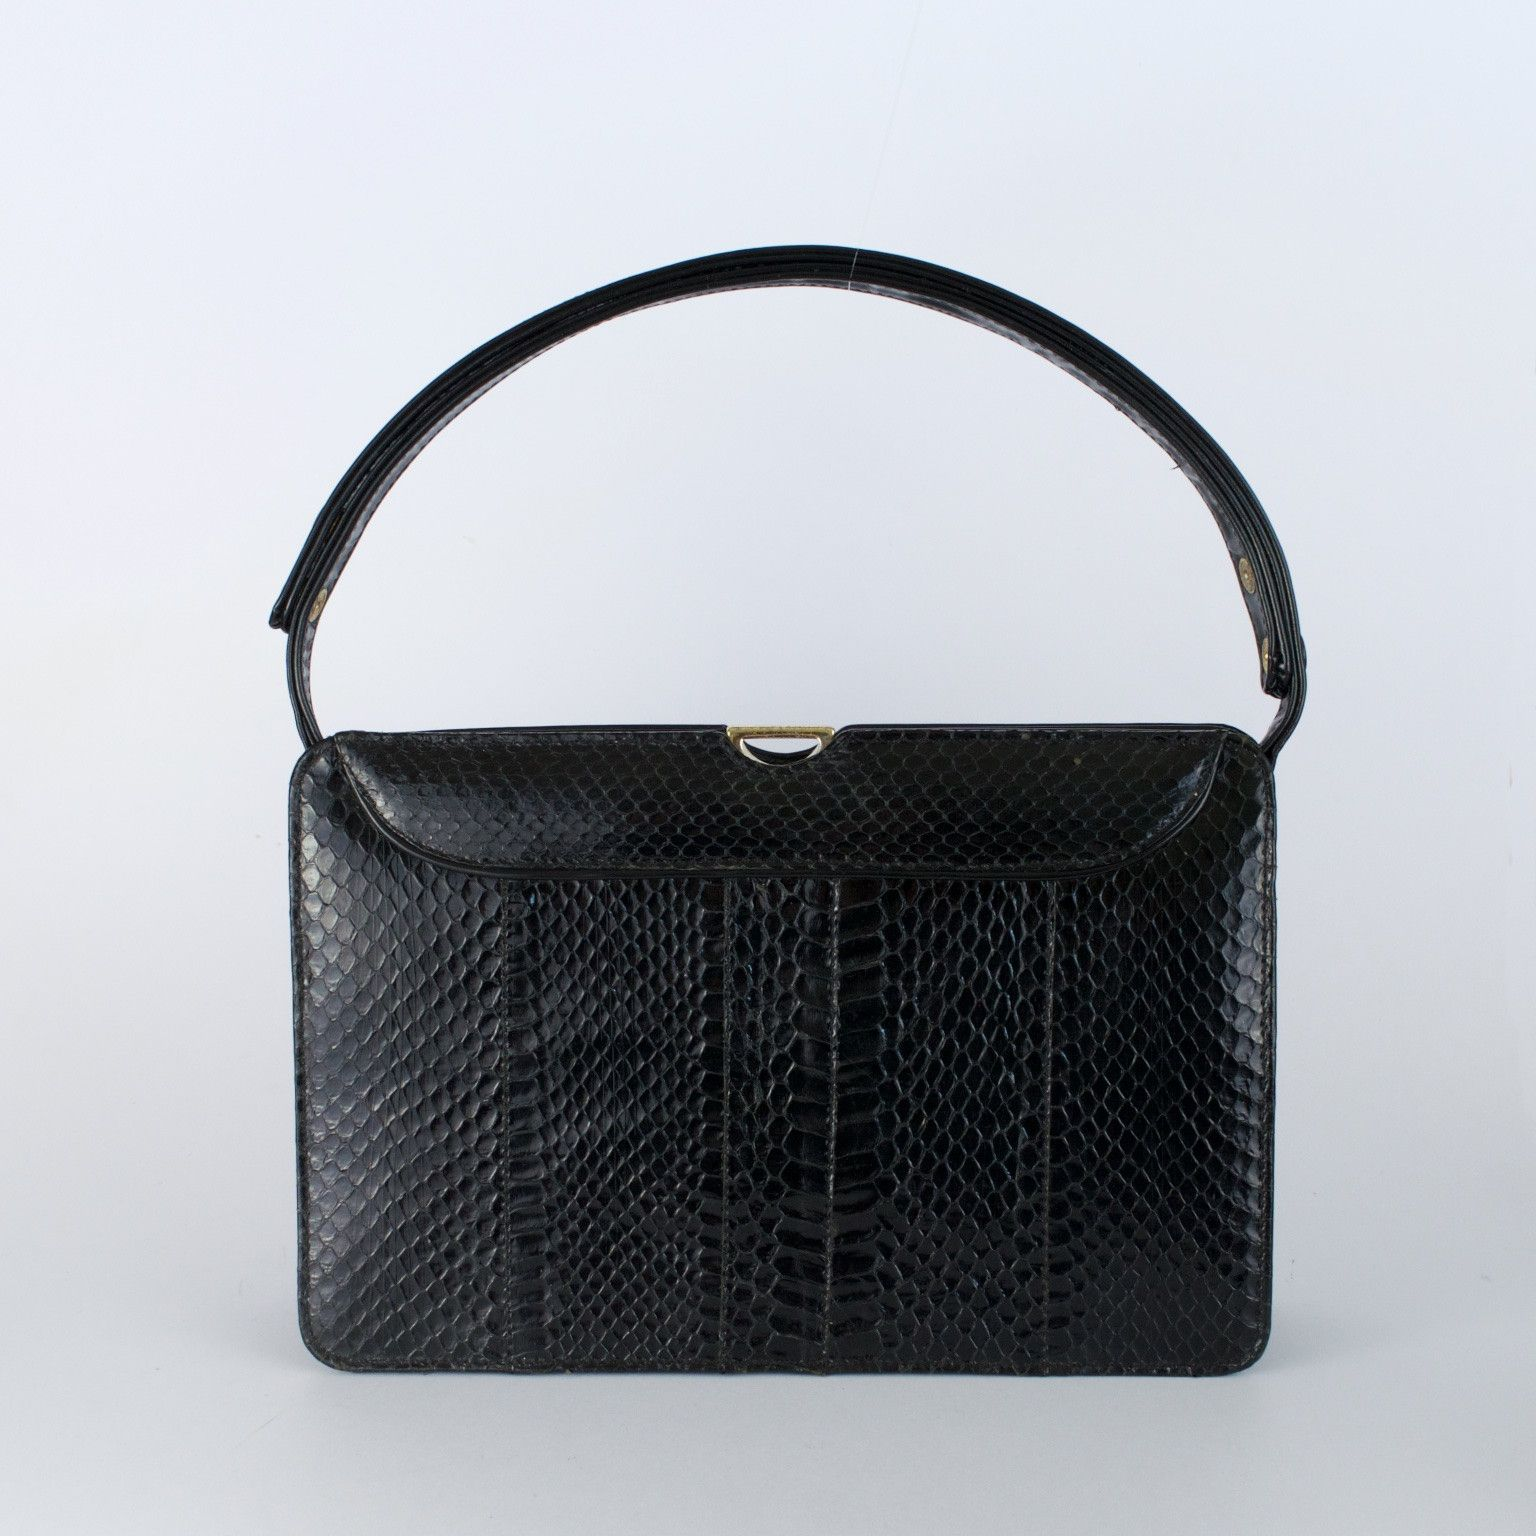 Snakeskin Black And Leather Vintage Handbag Made In England By Ackery Of London 85 From Otterley Hester